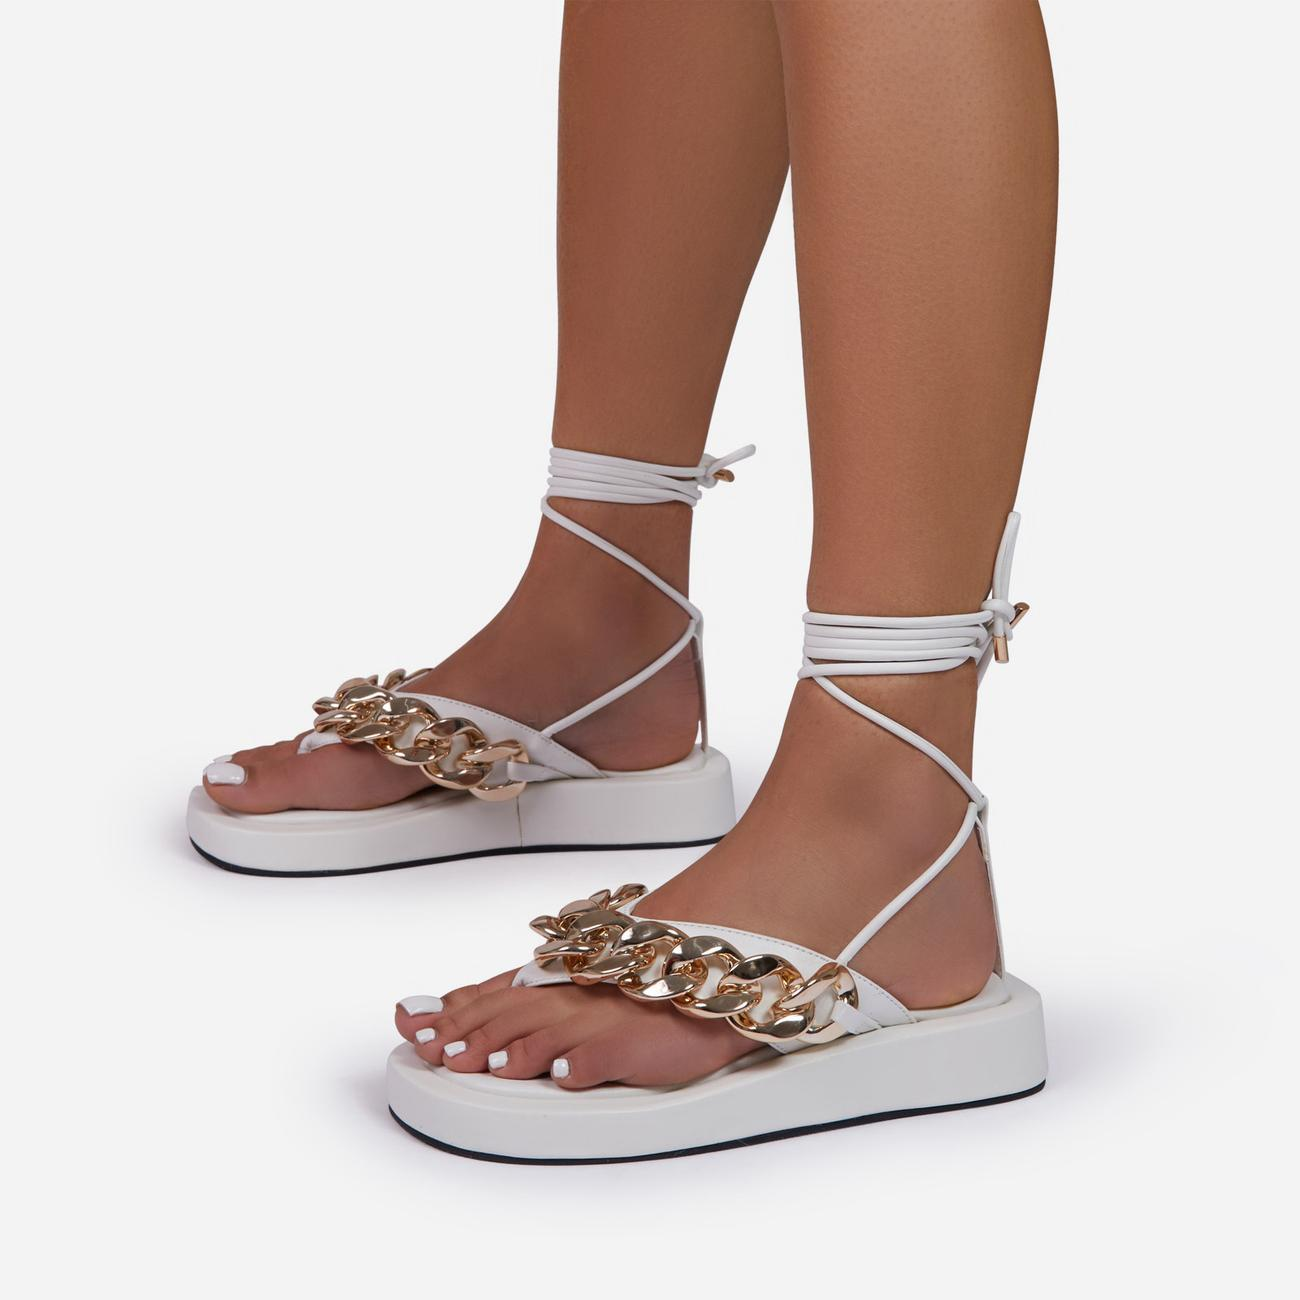 Hidden-Gems Chain Thong Detail Lace Up Platform Gladiator Sandal In White Faux Leather Image 2